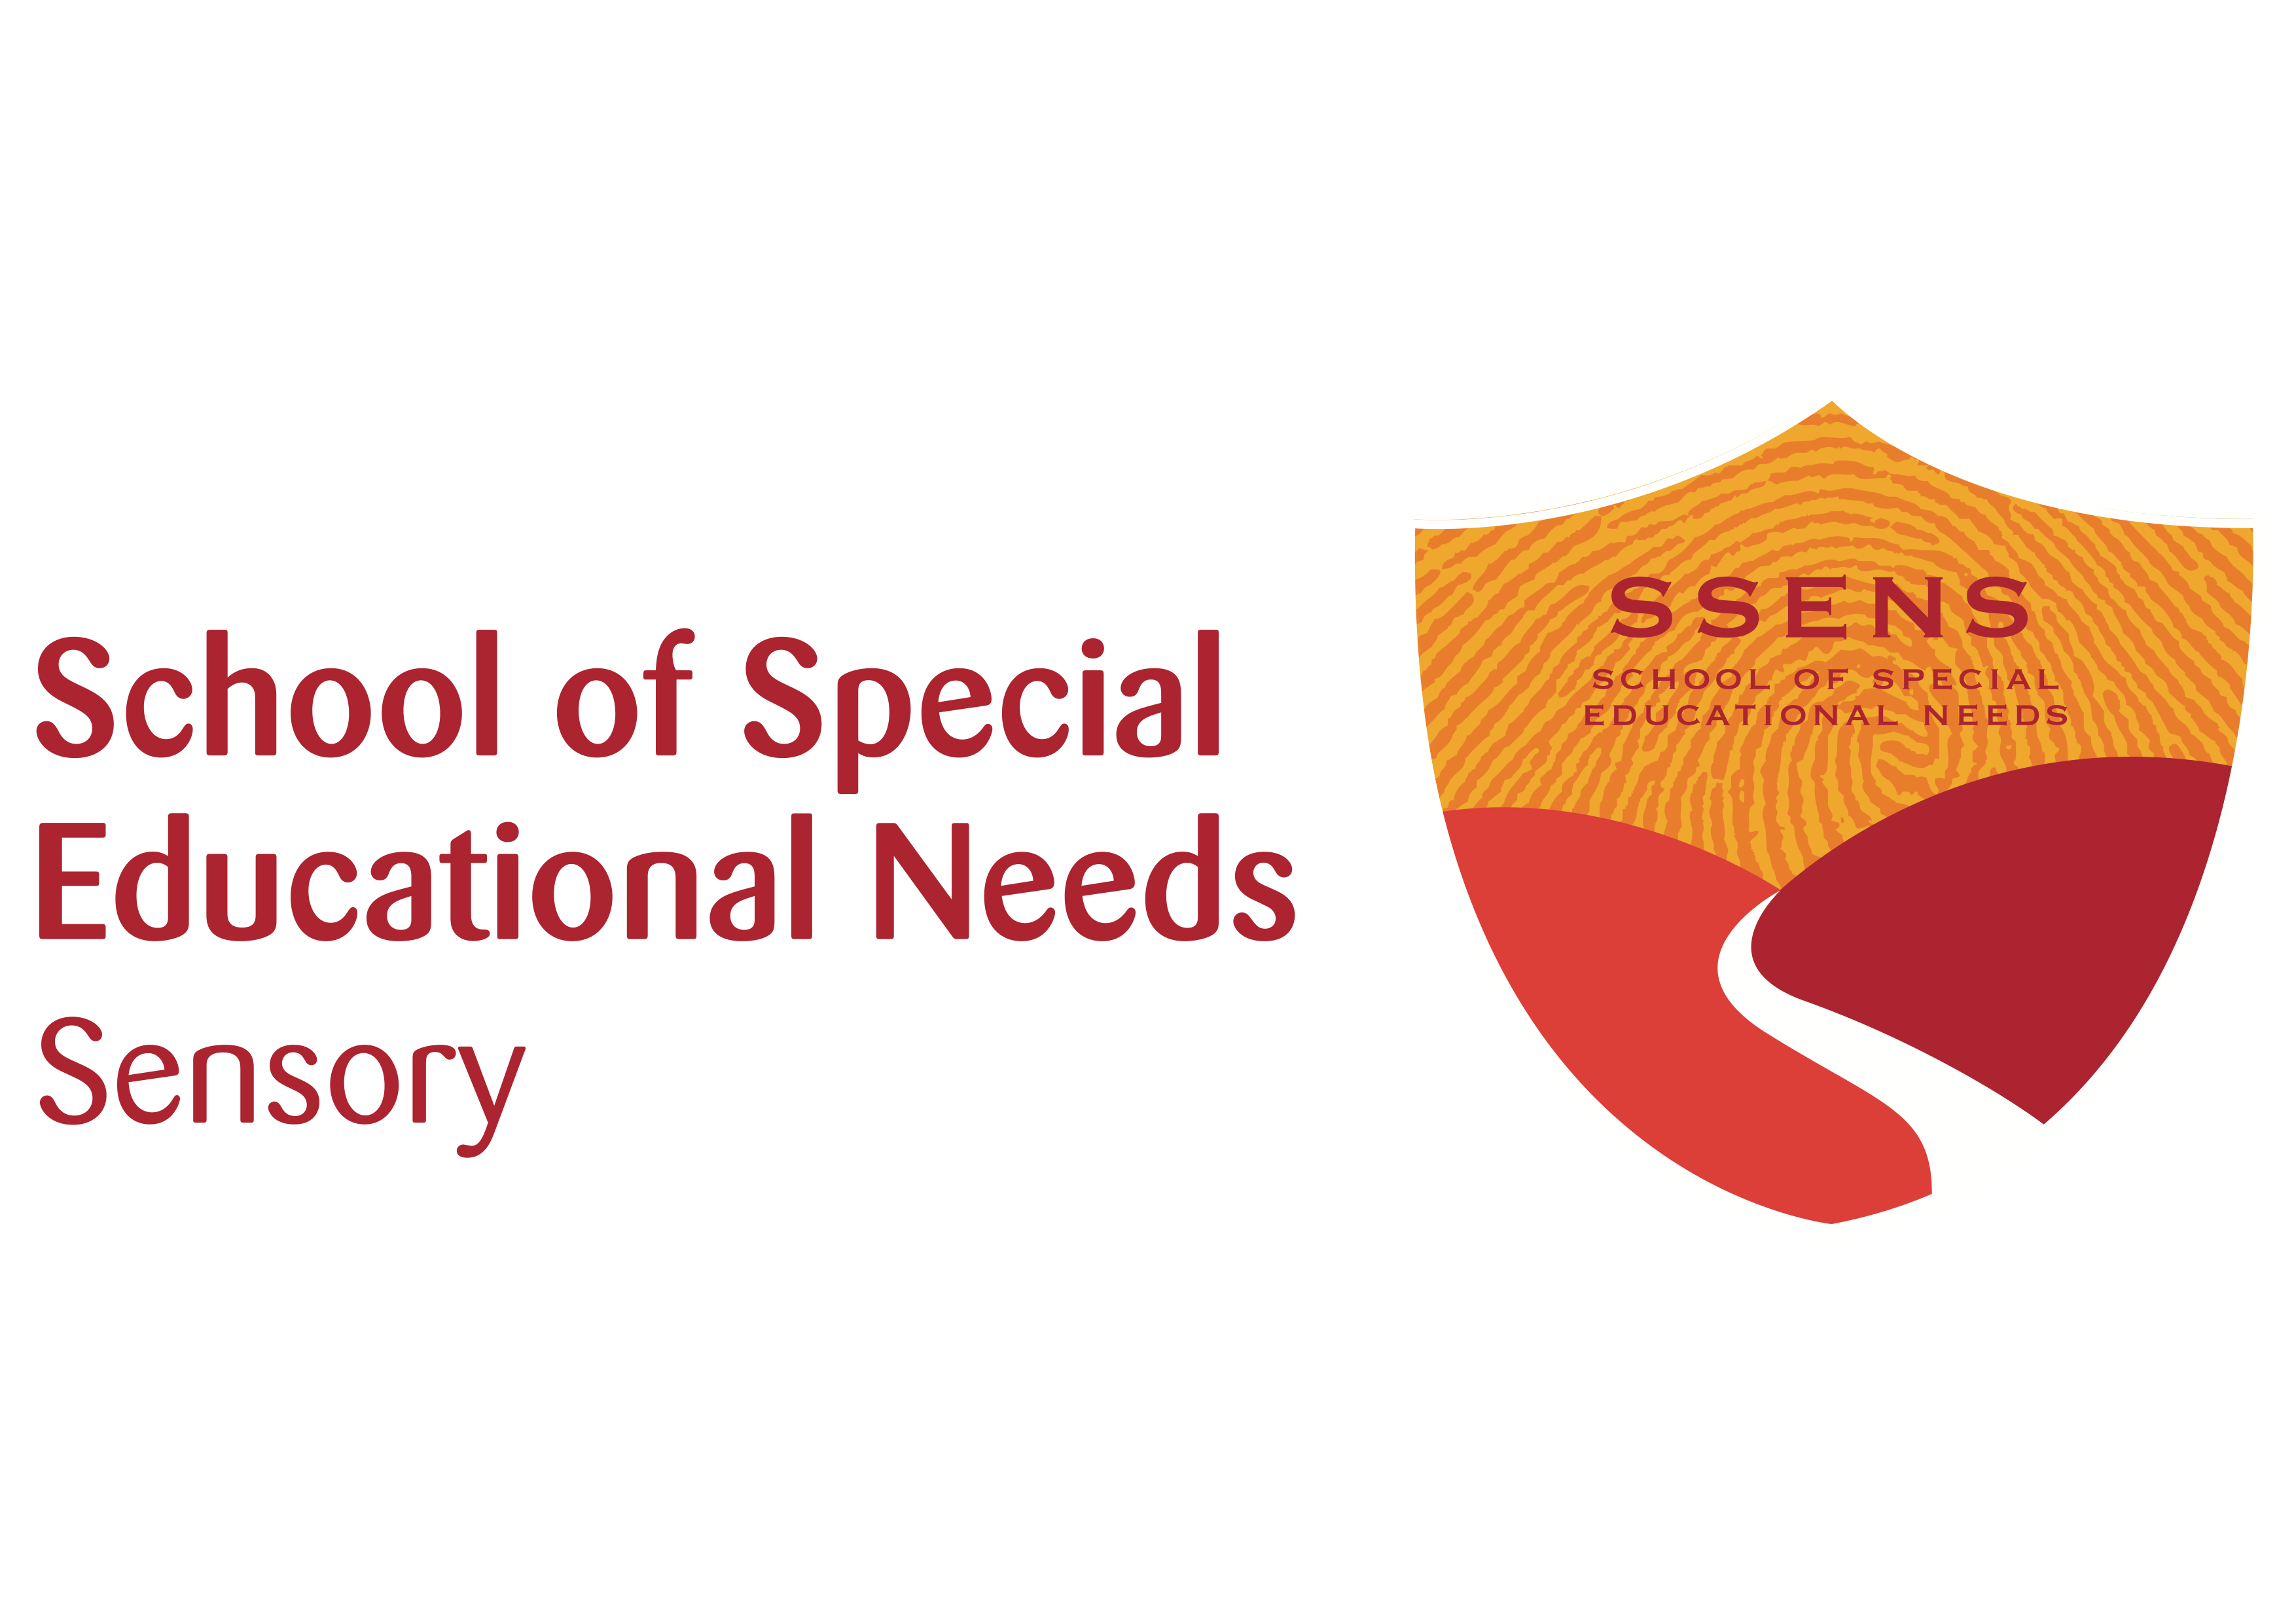 School of Special Educational Needs Sensory Logo